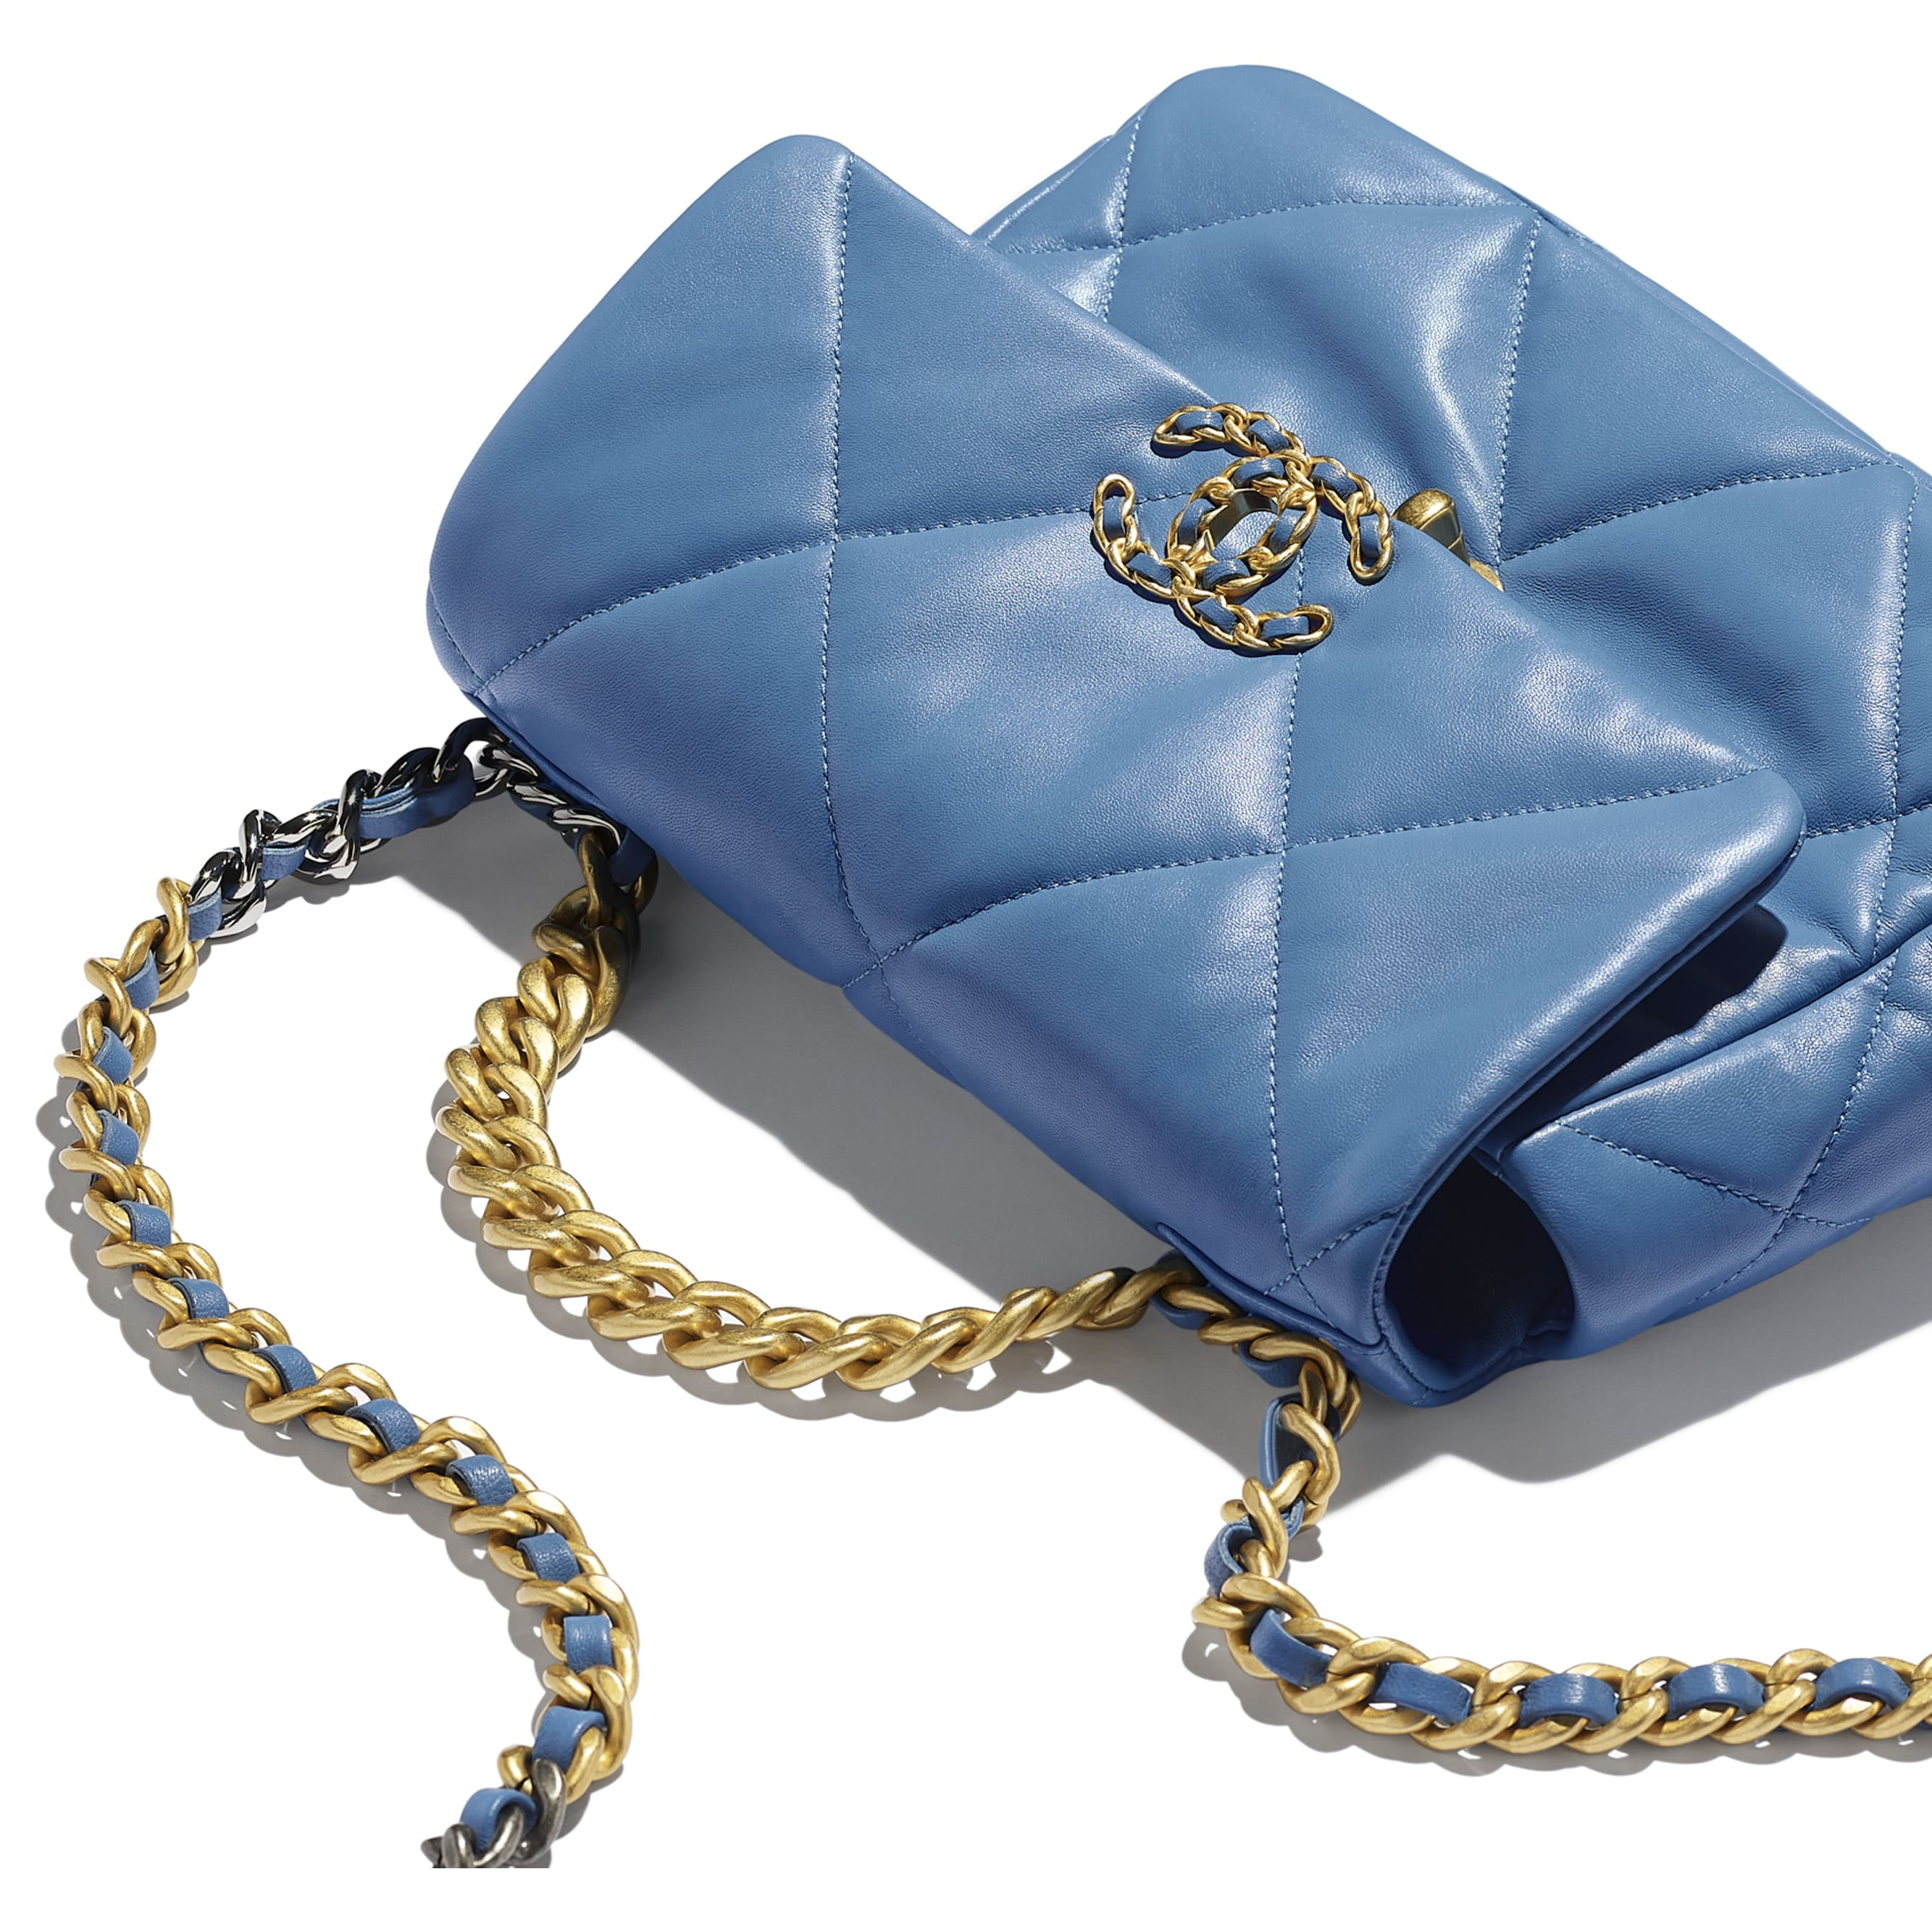 CHANEL 19 Flap Bag - Blue - Lambskin, Gold-Tone, Silver-Tone & Ruthenium-Finish Metal - CHANEL - Extra view - see standard sized version